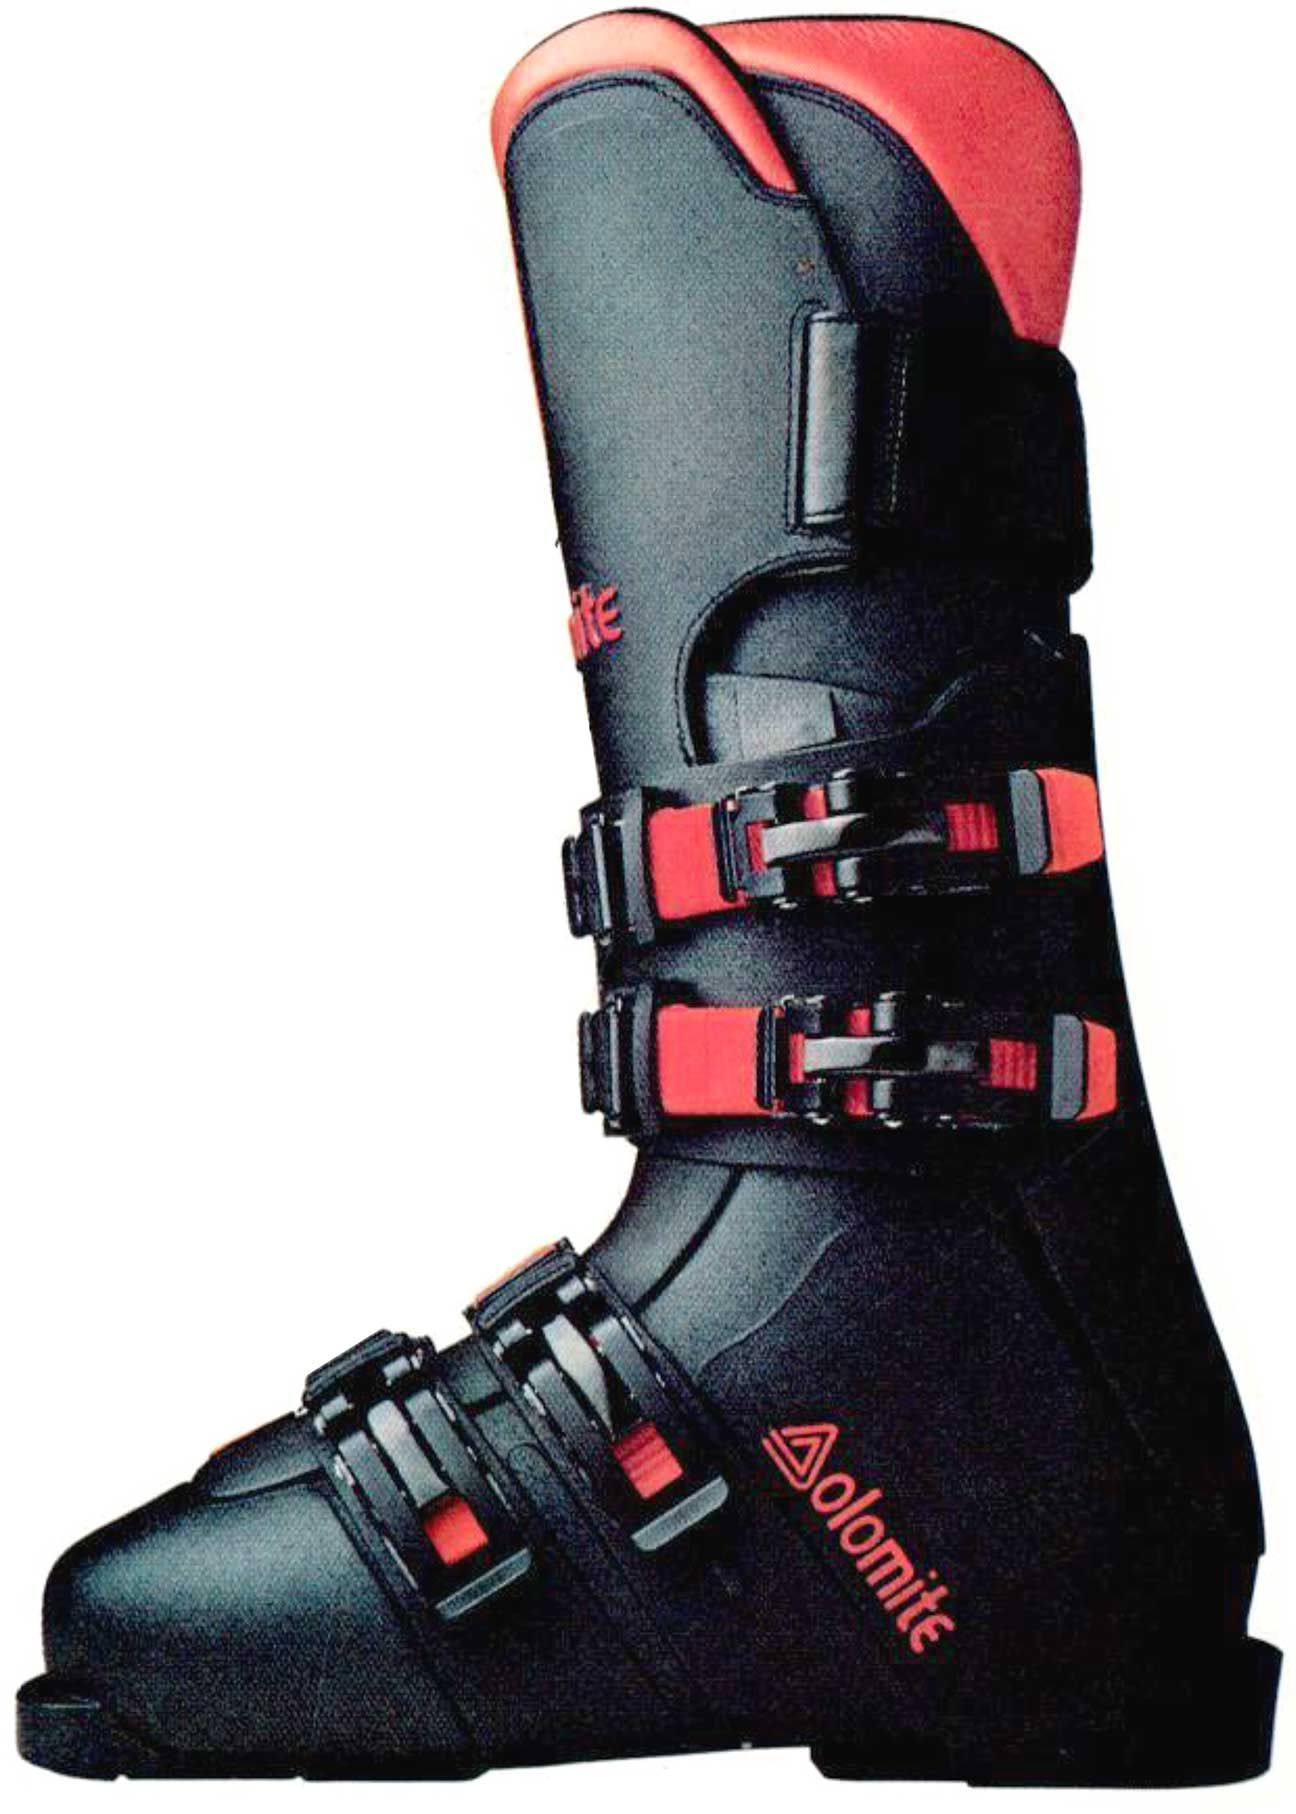 Pin by Dean Parrott on skiing Ski brands, Boots, Skiing